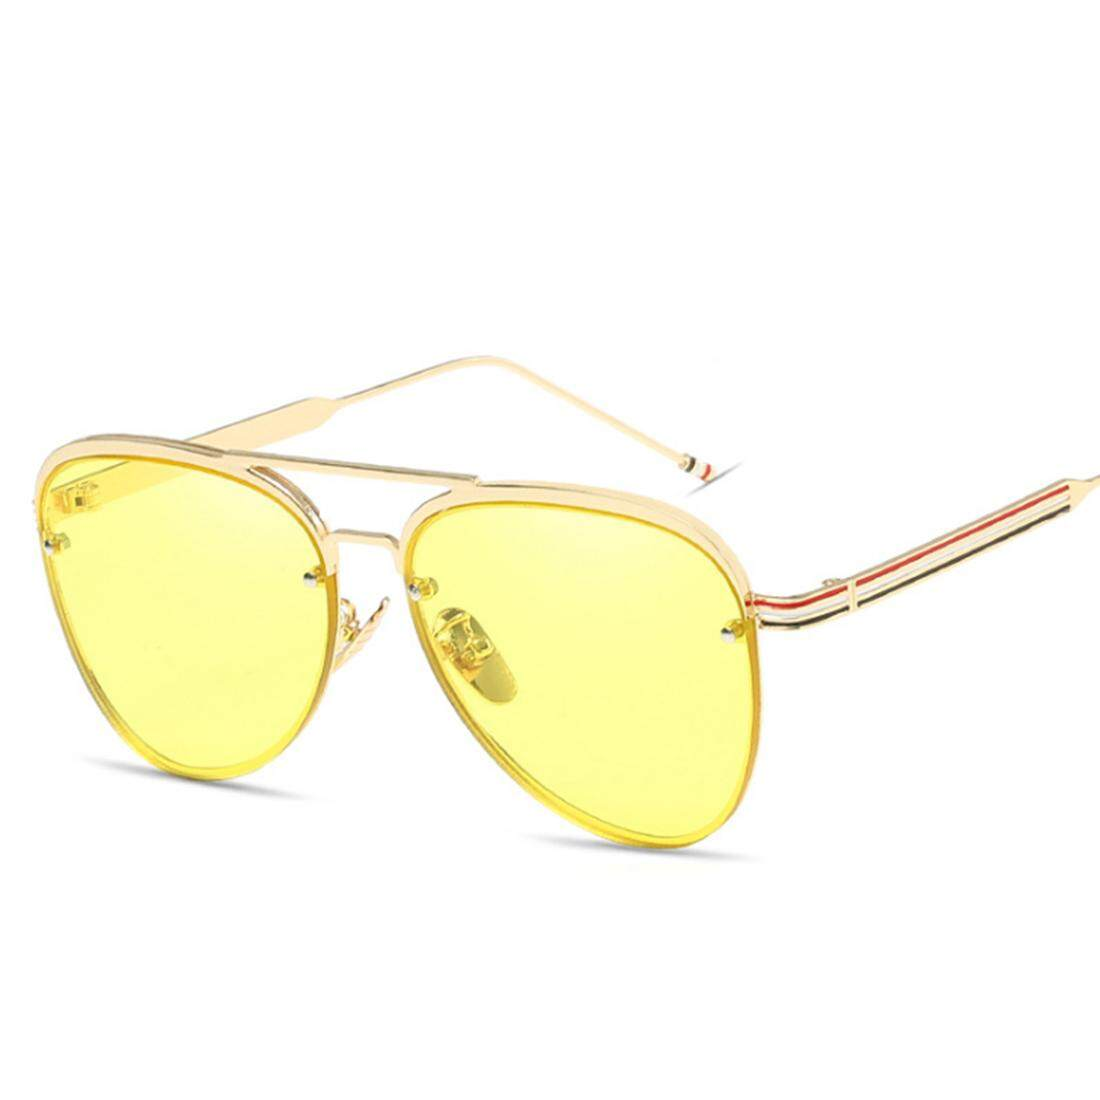 497f1ec89bf 360WISH Fashion Style Sunglasses with Color Film Aviator Eyeglasses for  Women Include Spectacle Case - Golden Frame + Yellow Lens